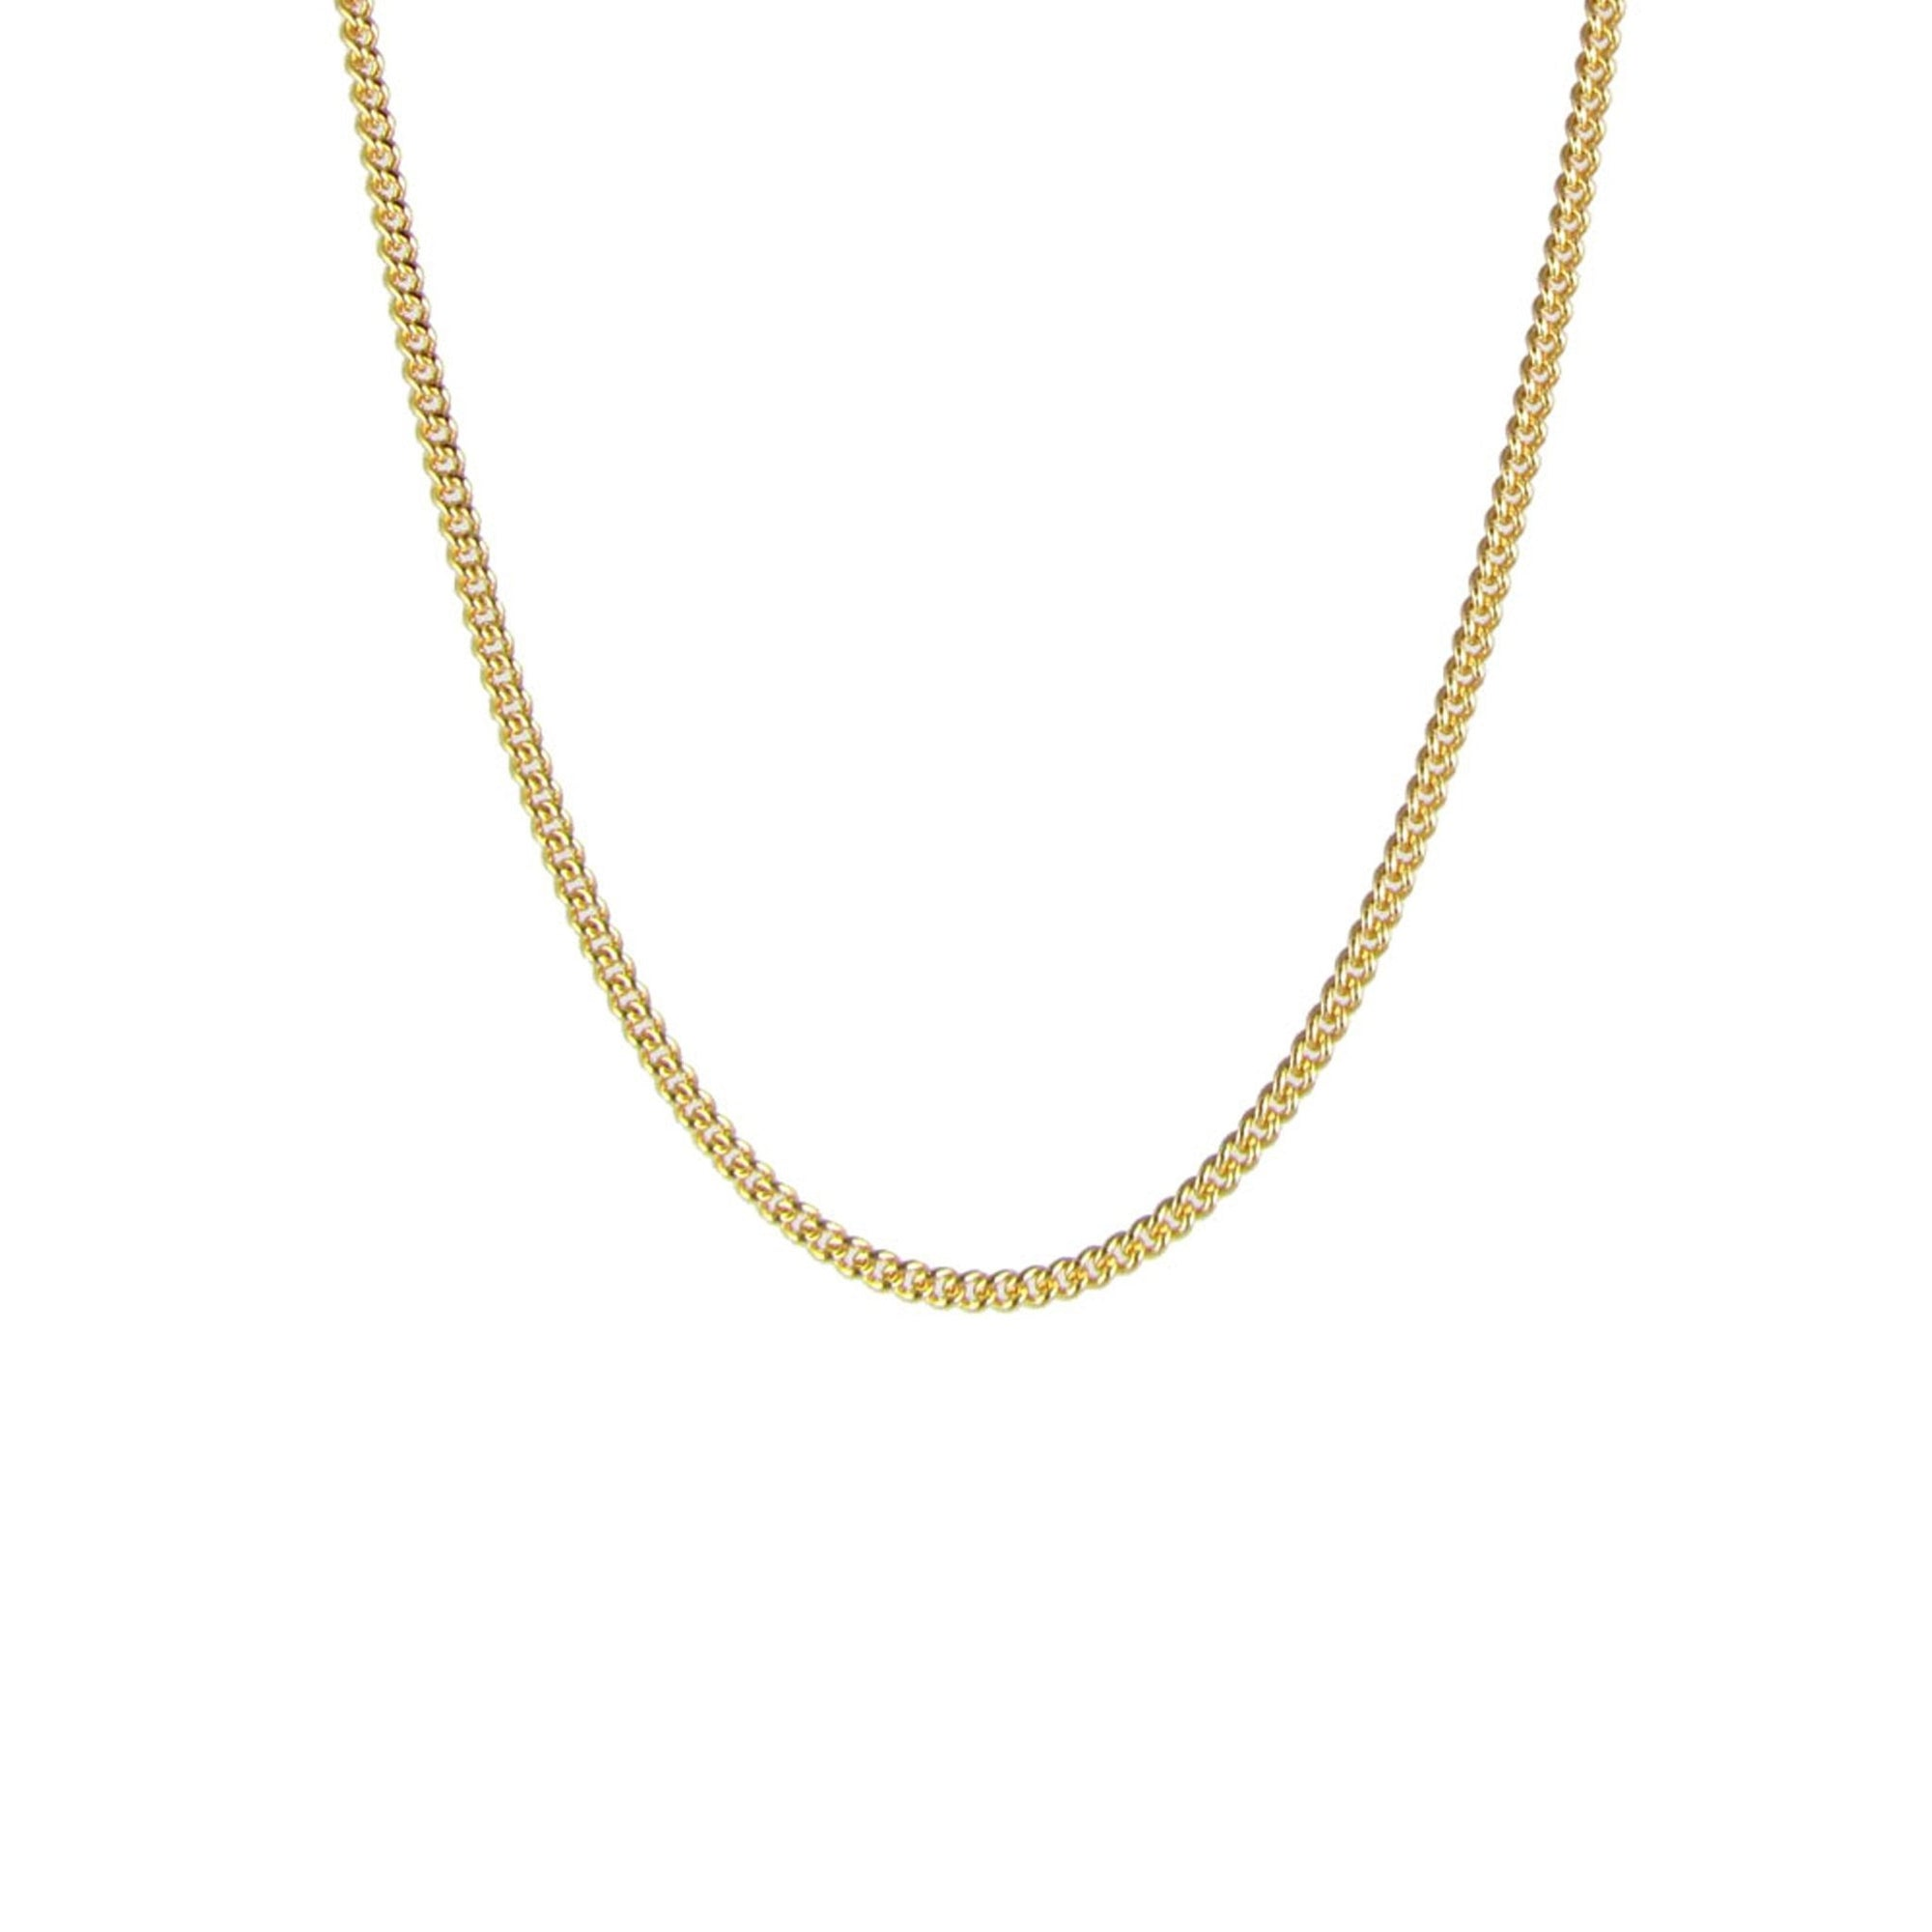 "CHARMING CURB CHAIN 14-17 "" NECKLACE GOLD - SO PRETTY CARA COTTER"